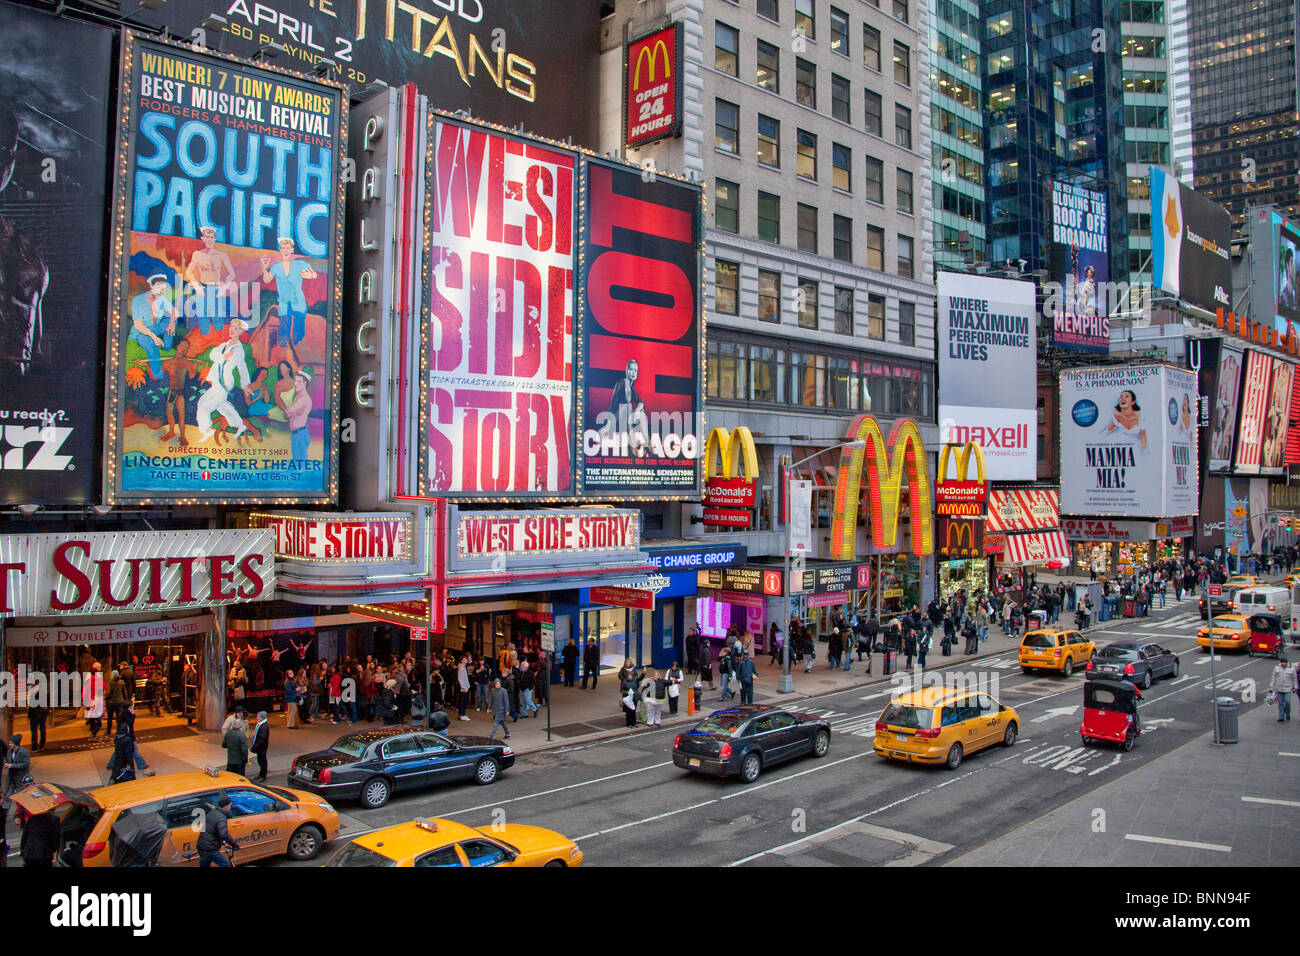 What time in new york usa